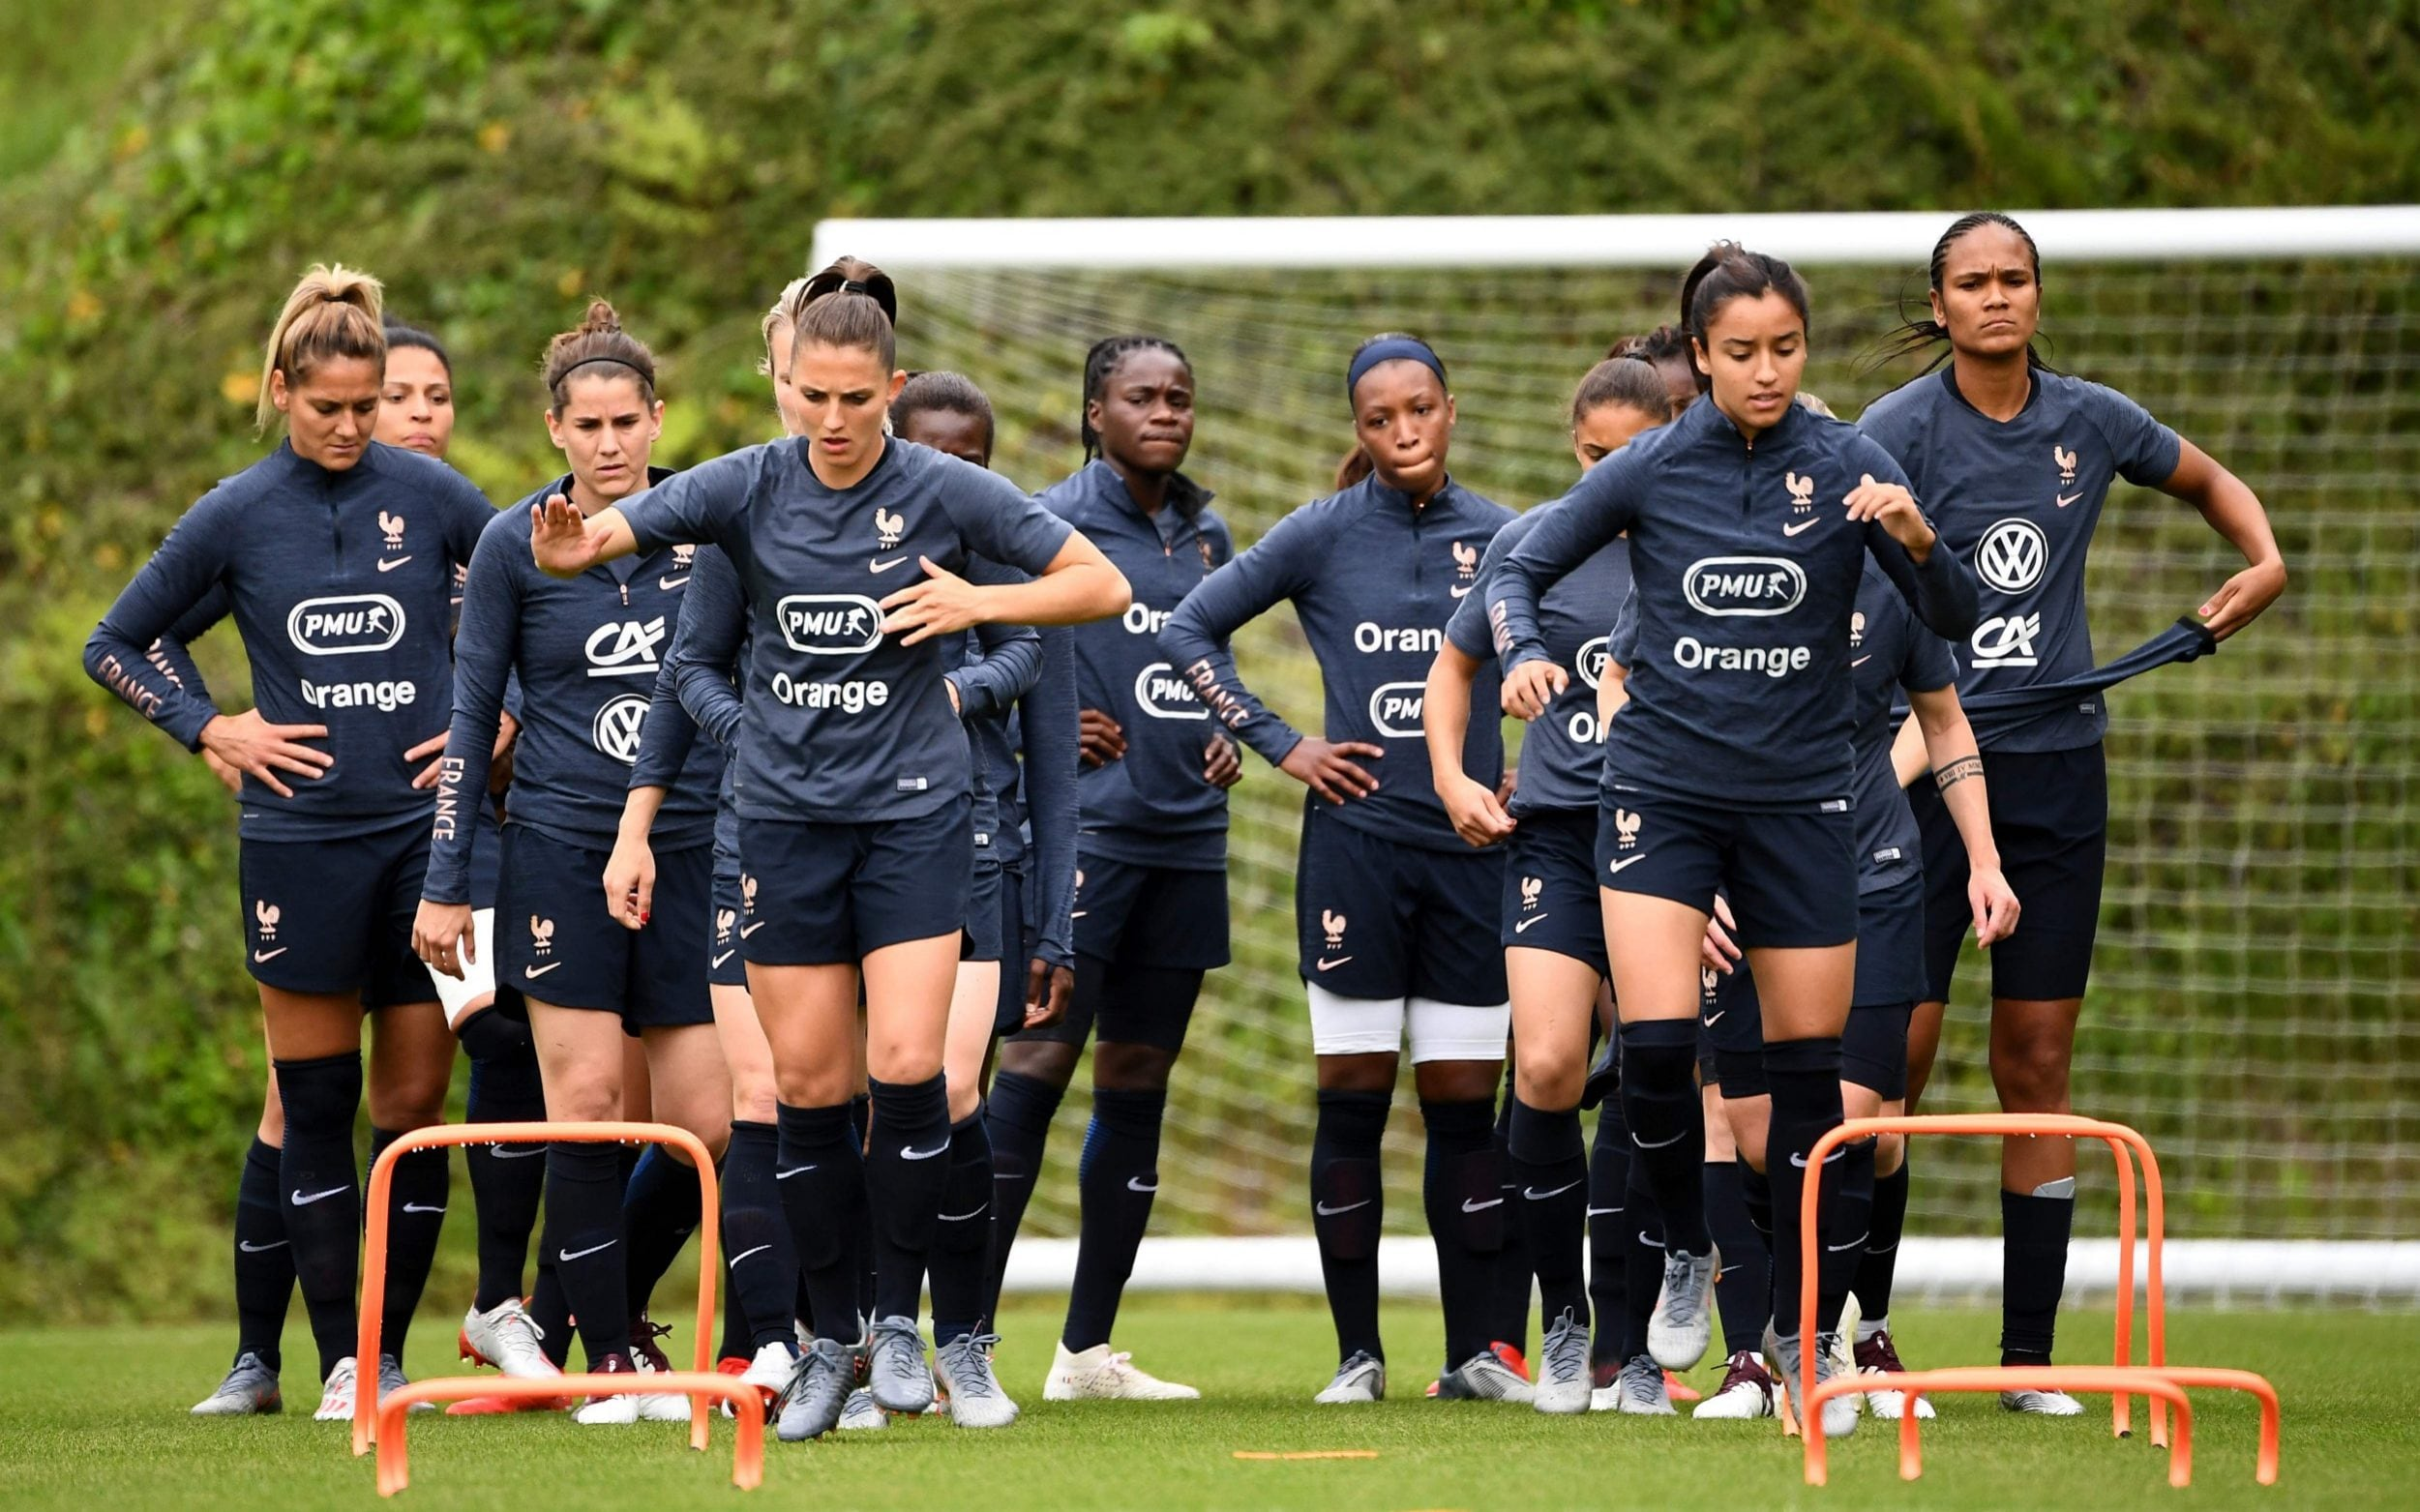 Get moving with 25% off sweaty betty activewear sections show more follow today during. Casting Aside Of France Women S Team In Favour Of Men S Friendly Makes Mockery Of World Cup S Ambitions